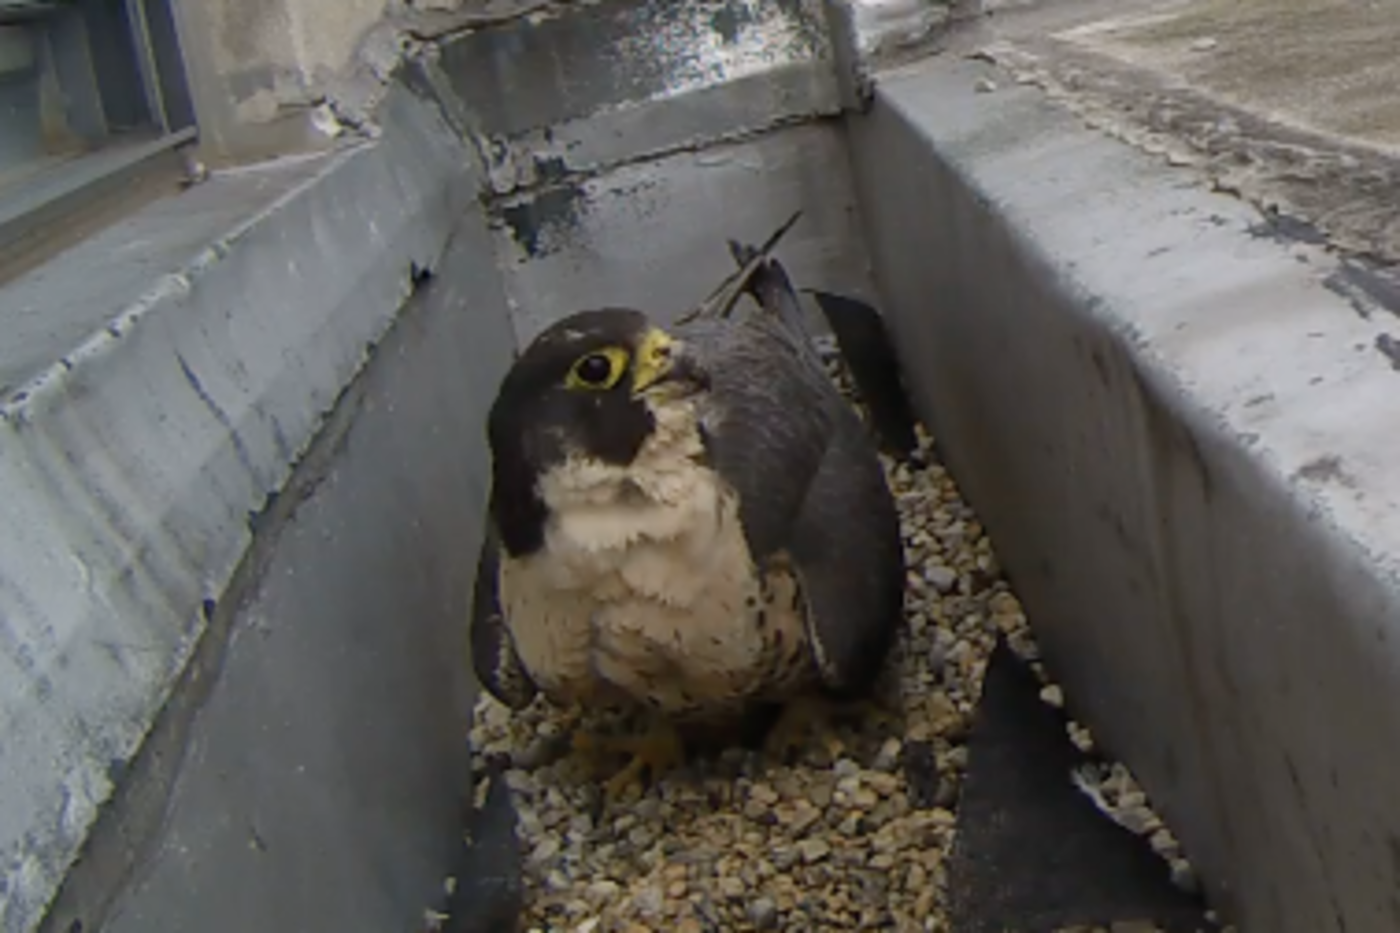 A single Peregrine Falcon, sitting near the Rockford peregrine webcam.